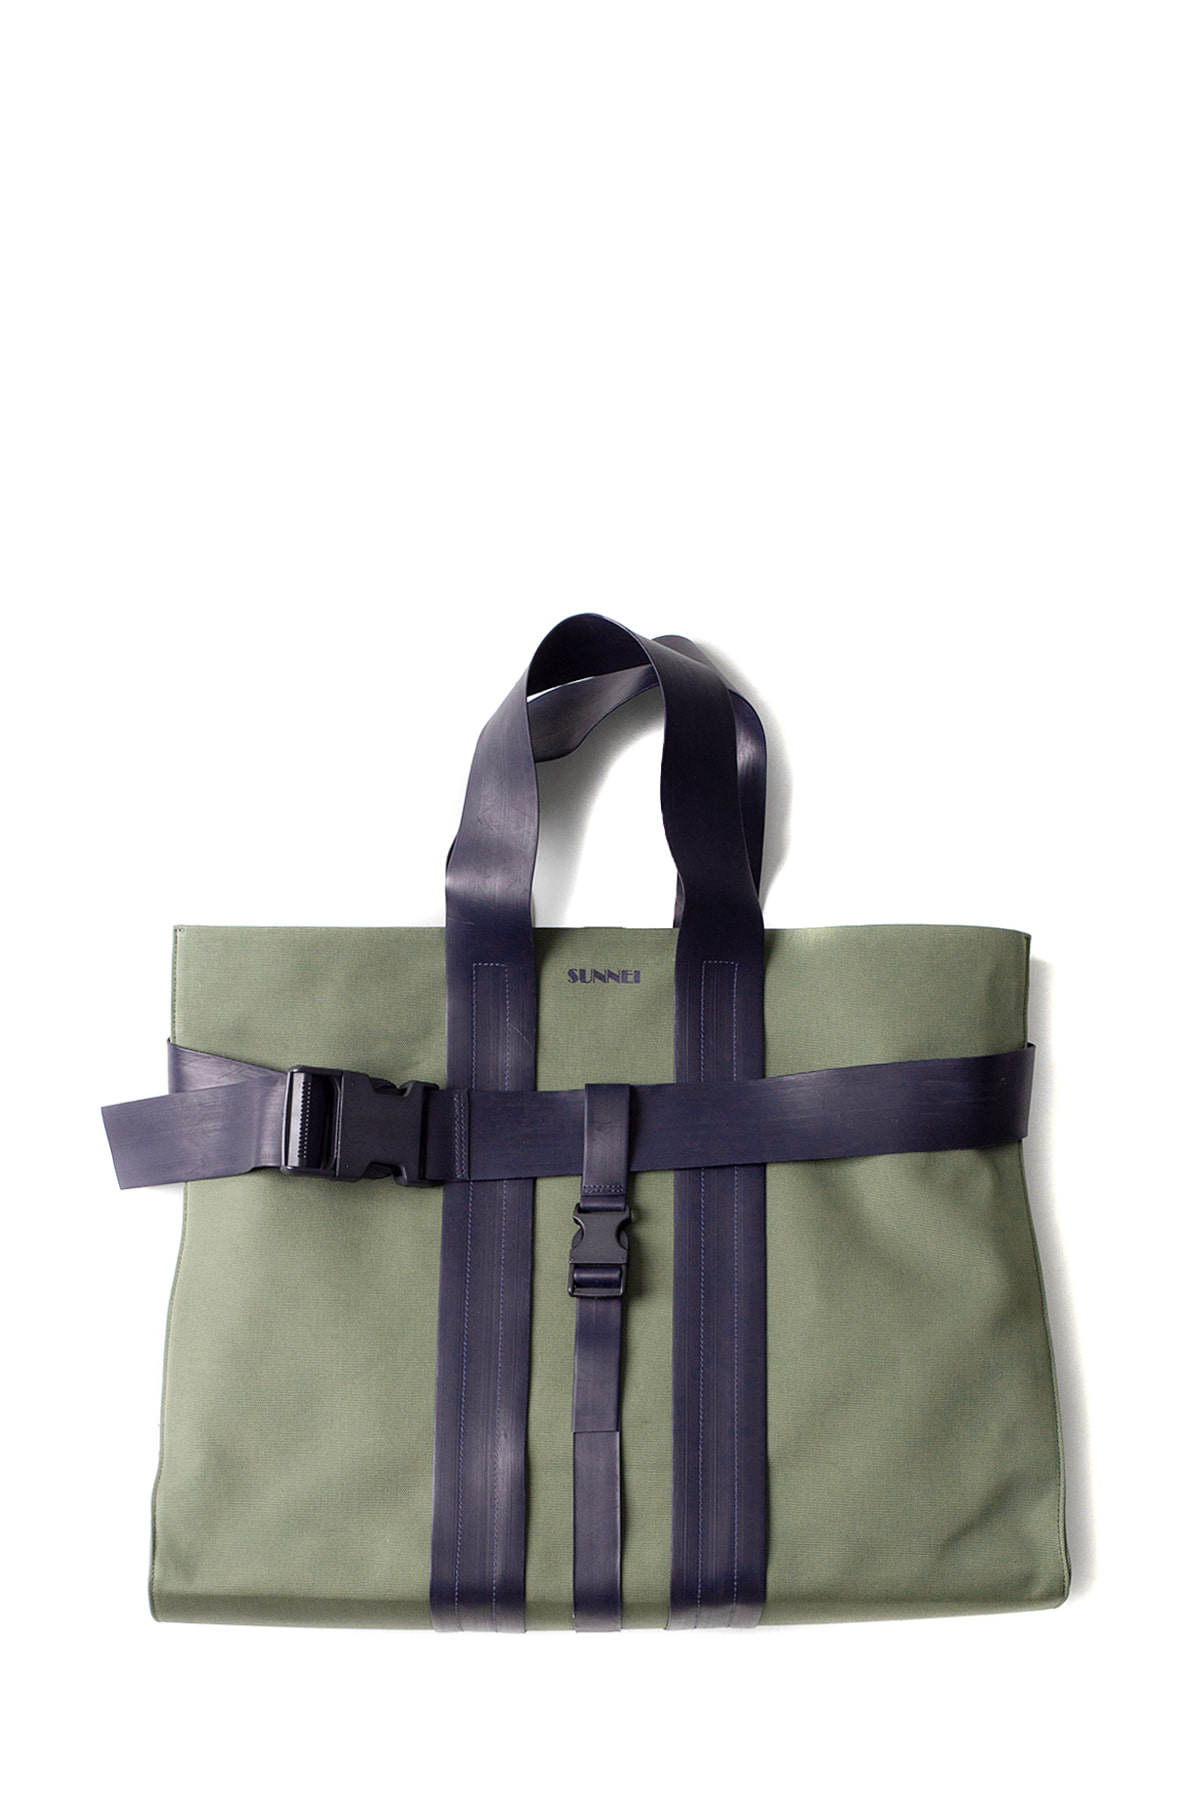 SUNNEI : Messenger Bag (Khaki & Black)